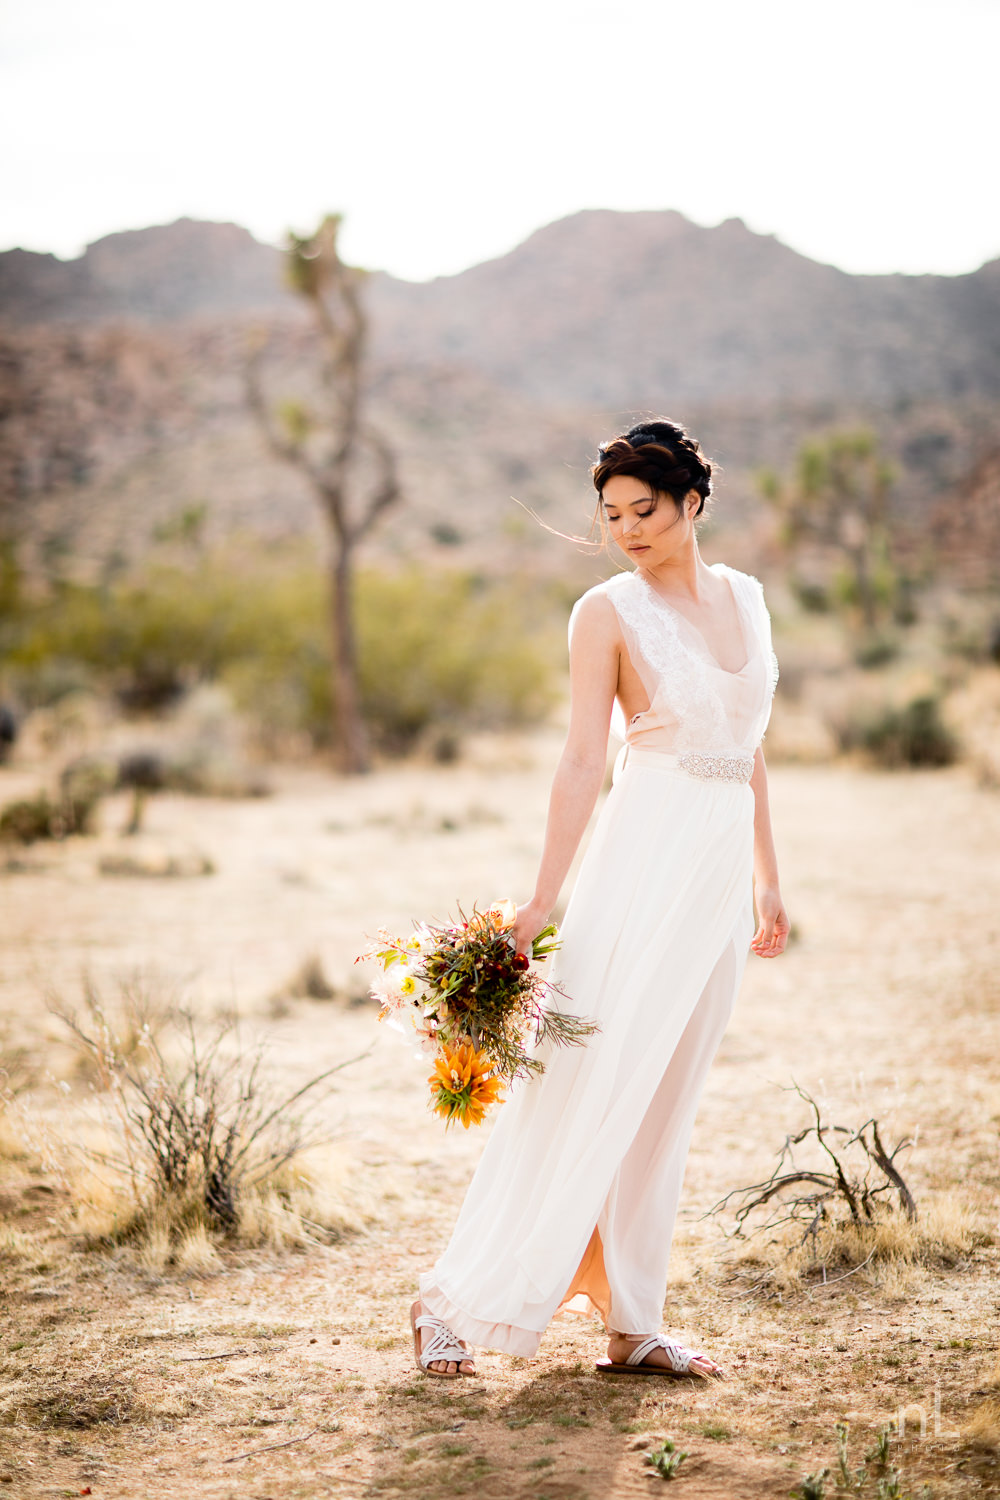 joshua-tree-engagement-wedding-elopement-photography-stylized-photoshoot-bridal-portrait-with-bouquet-and-dress